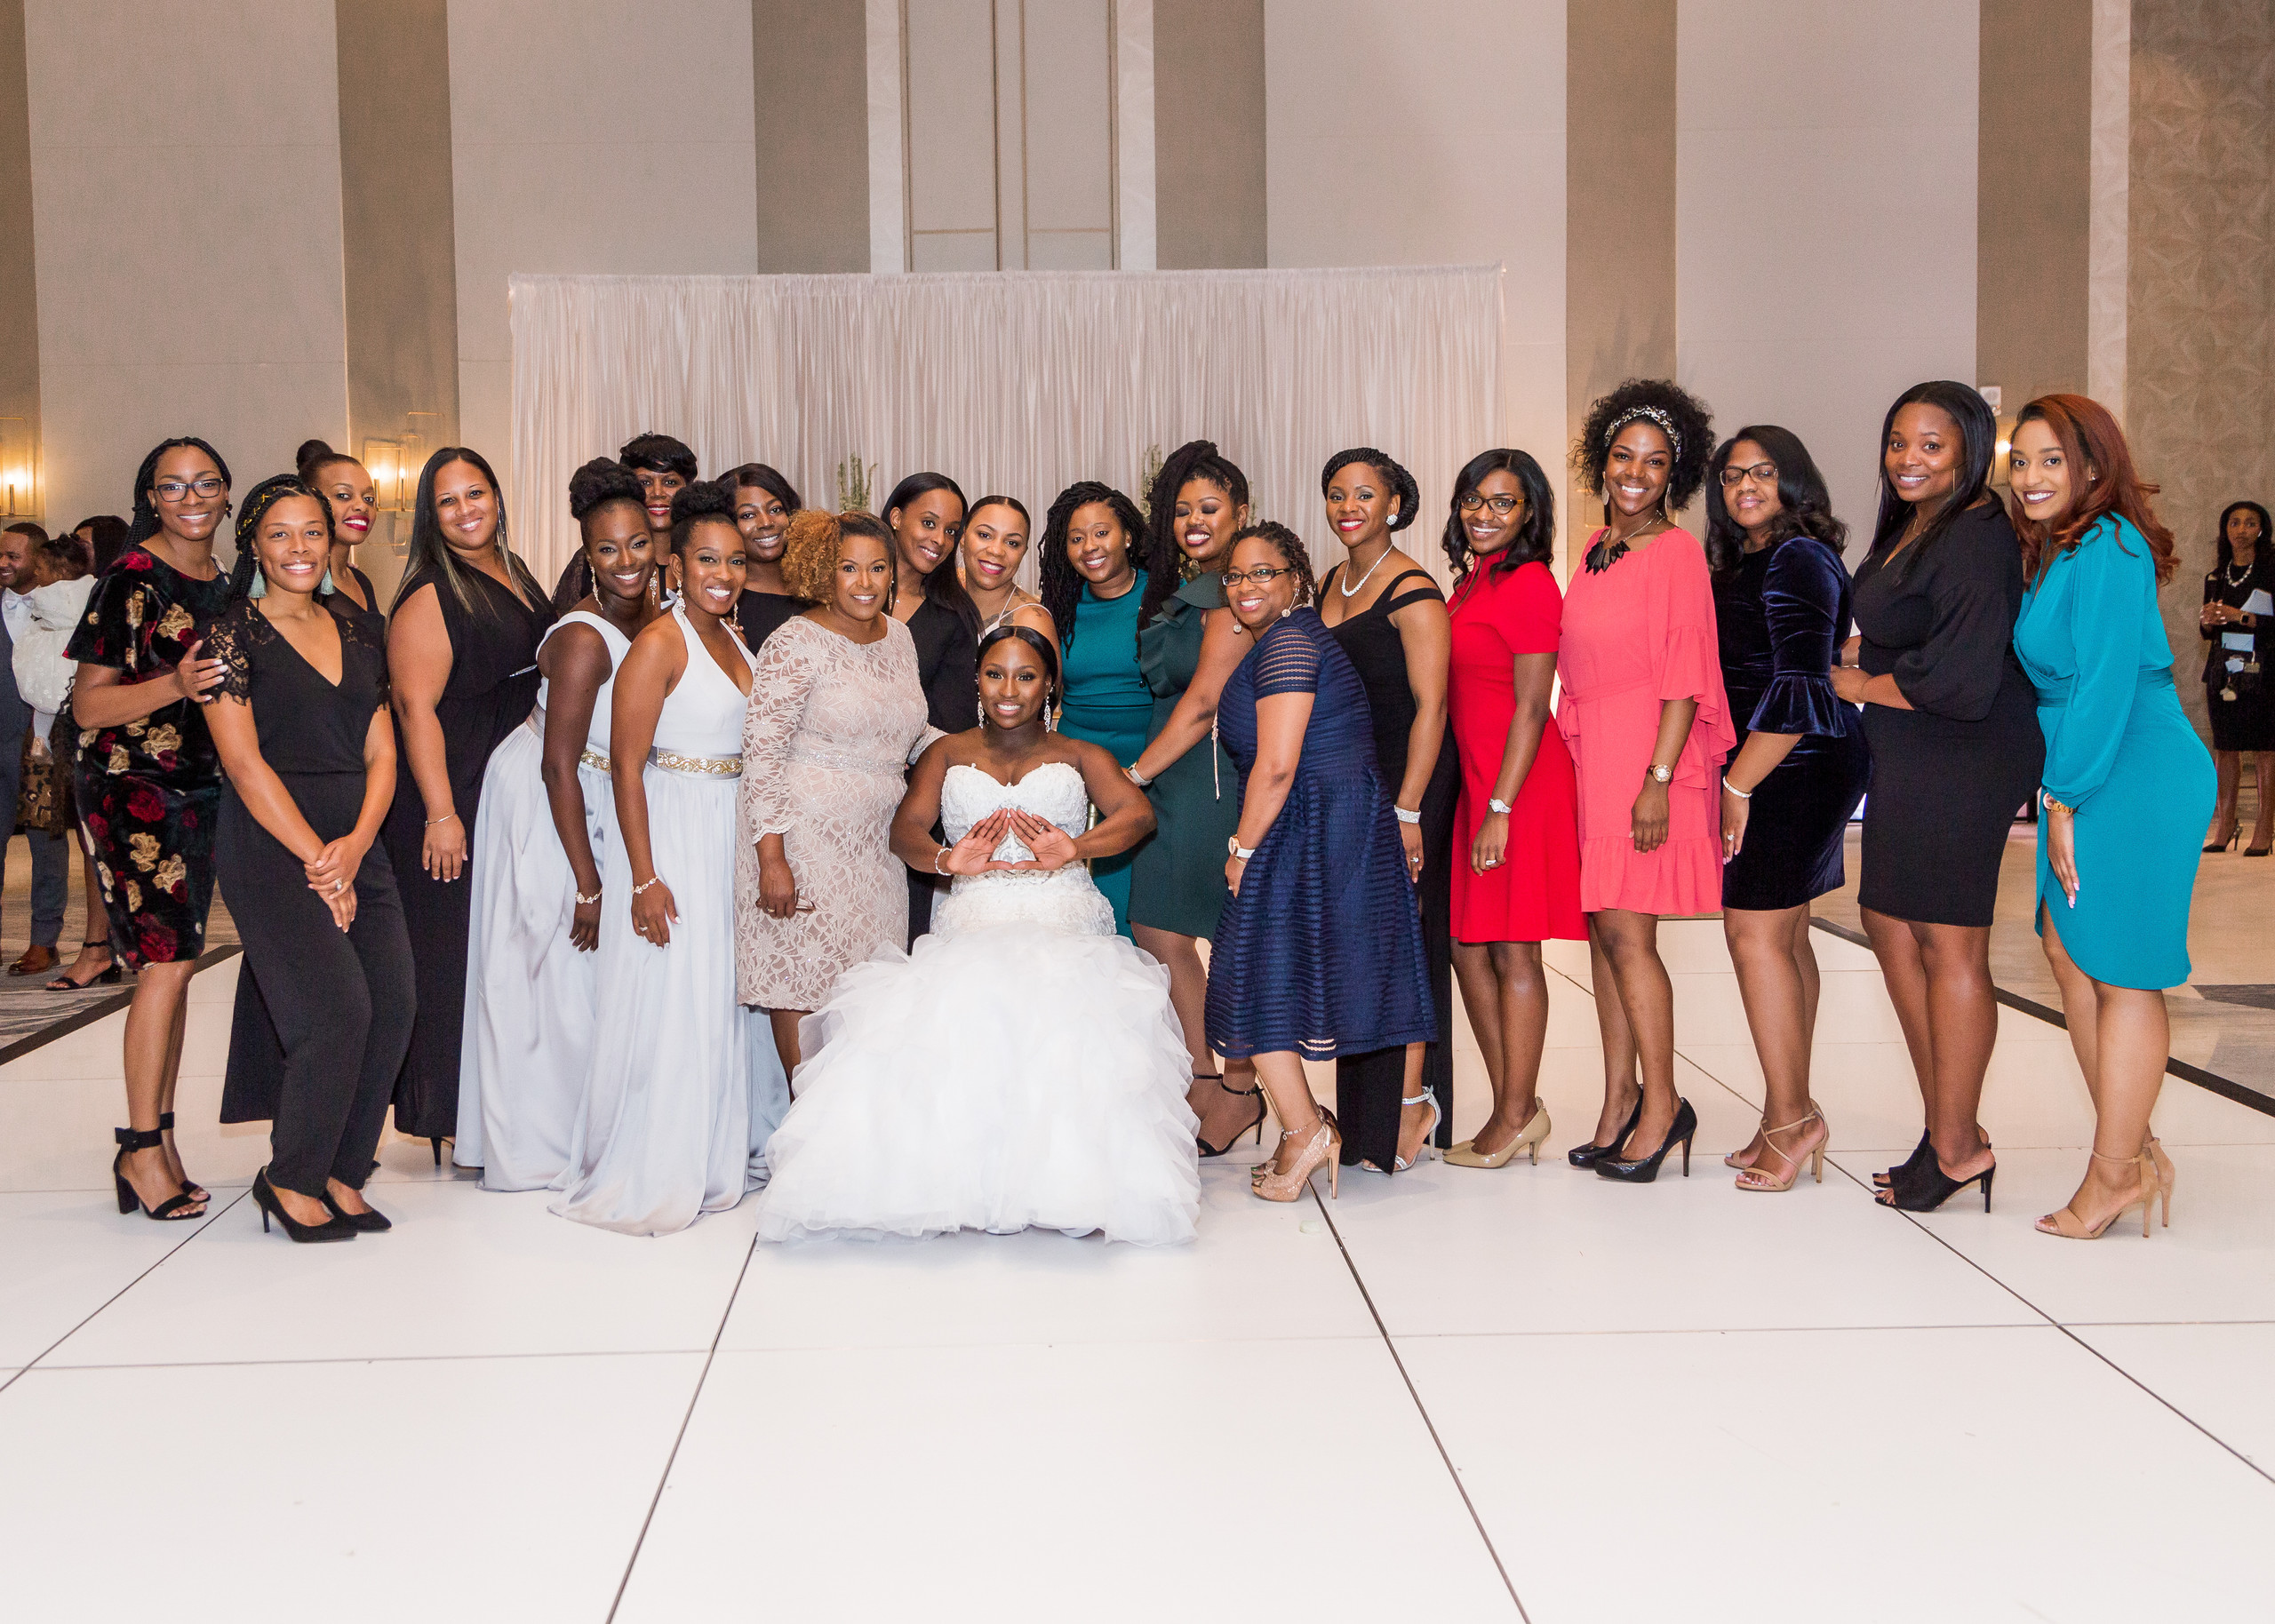 The bride poses with all of the ladies of Delta Sigma Theta Sorority Incorporated during the wedding reception at the Hilton Main in Norfolk, Virginia.